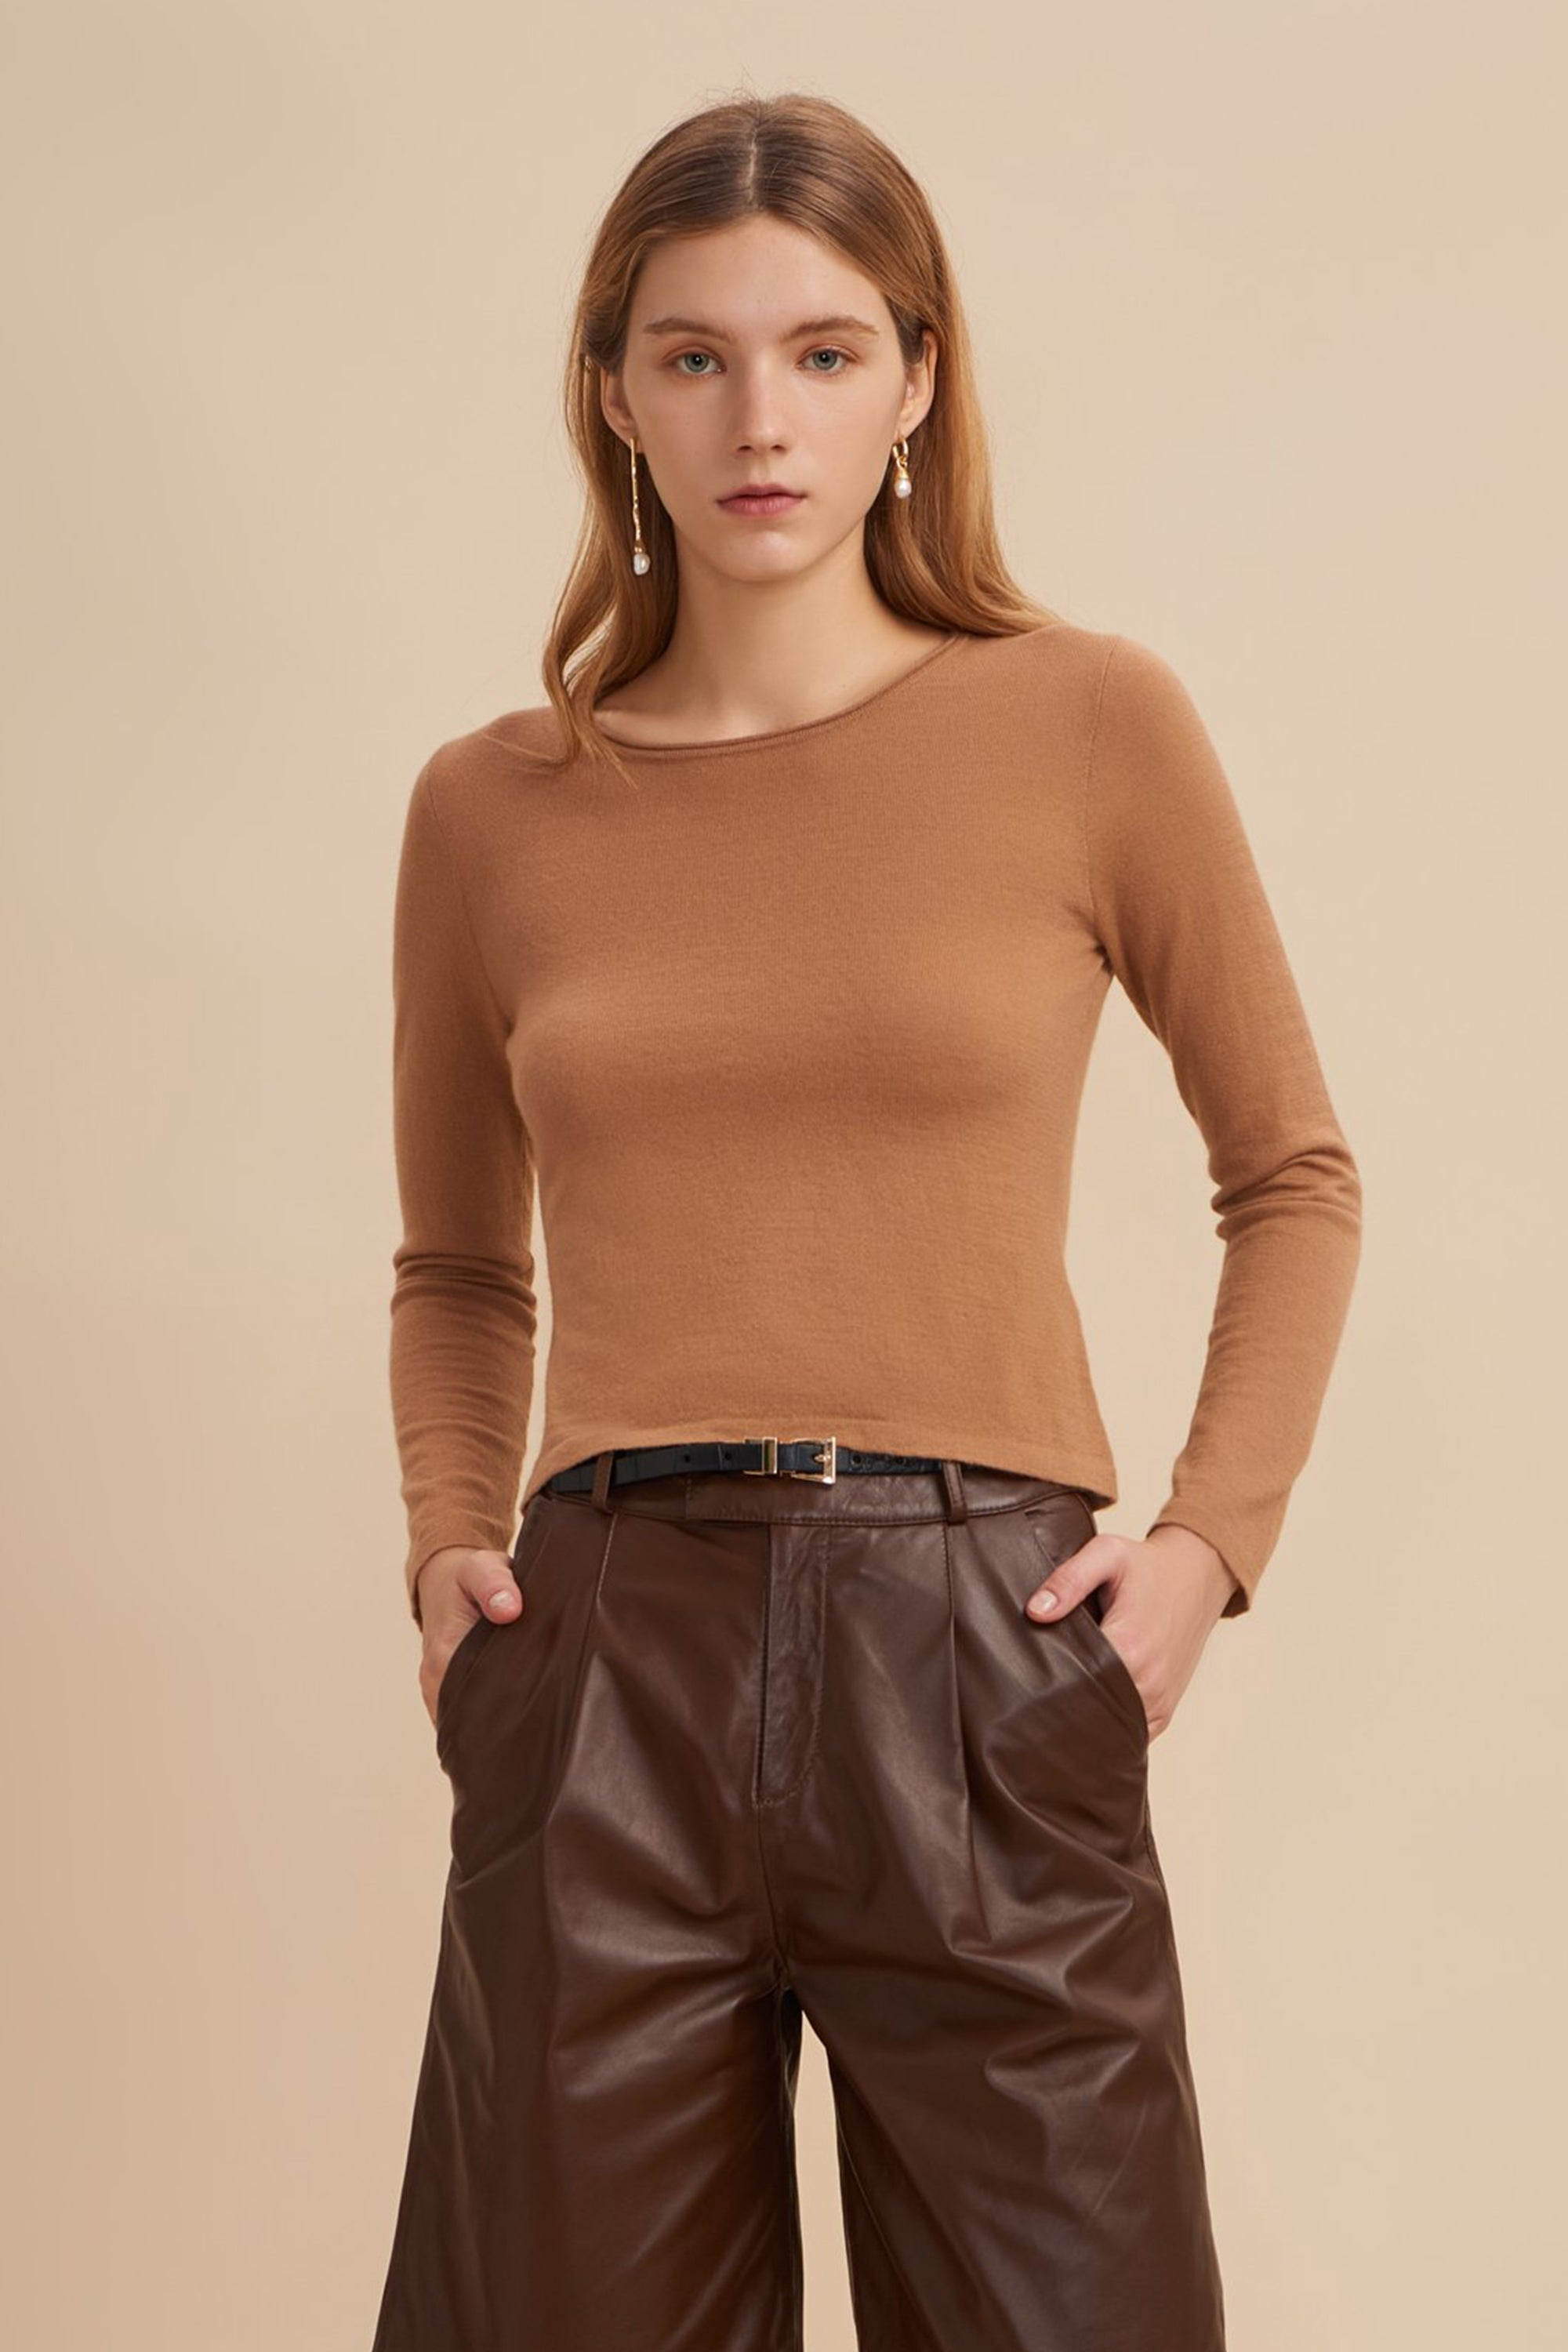 fine gauge sweater,fine gauge knit,fine gauge cashmere, cropped cashmere sweater, cropped sweater, cropped sweater top,cropped knit sweater,camel sweater, camel cashmere sweater, camel sweater women, camel sweater outfit, crew neck cashmere sweater, crew neck sweater women, lightweight sweater, light weight sweater